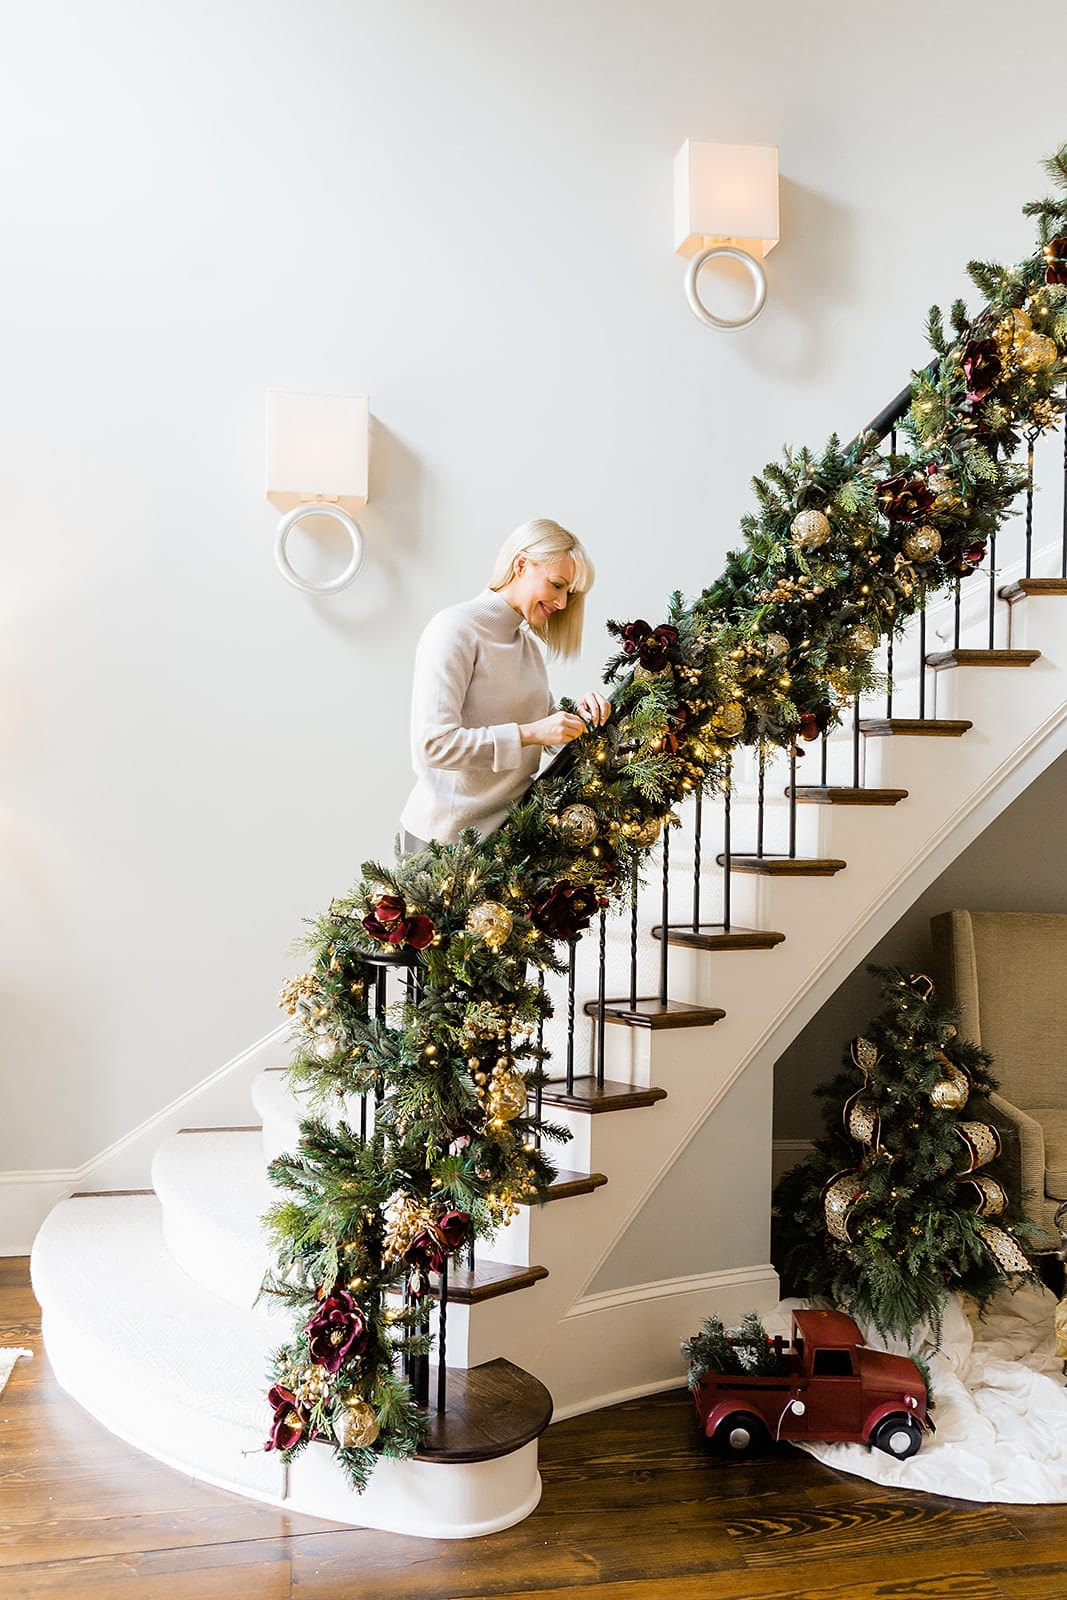 Banister Garland with Christmas Garland with Holiday Blogger BlueGrayGal. Sconces and Benjamin Moore Brushed Aluminum wall color.